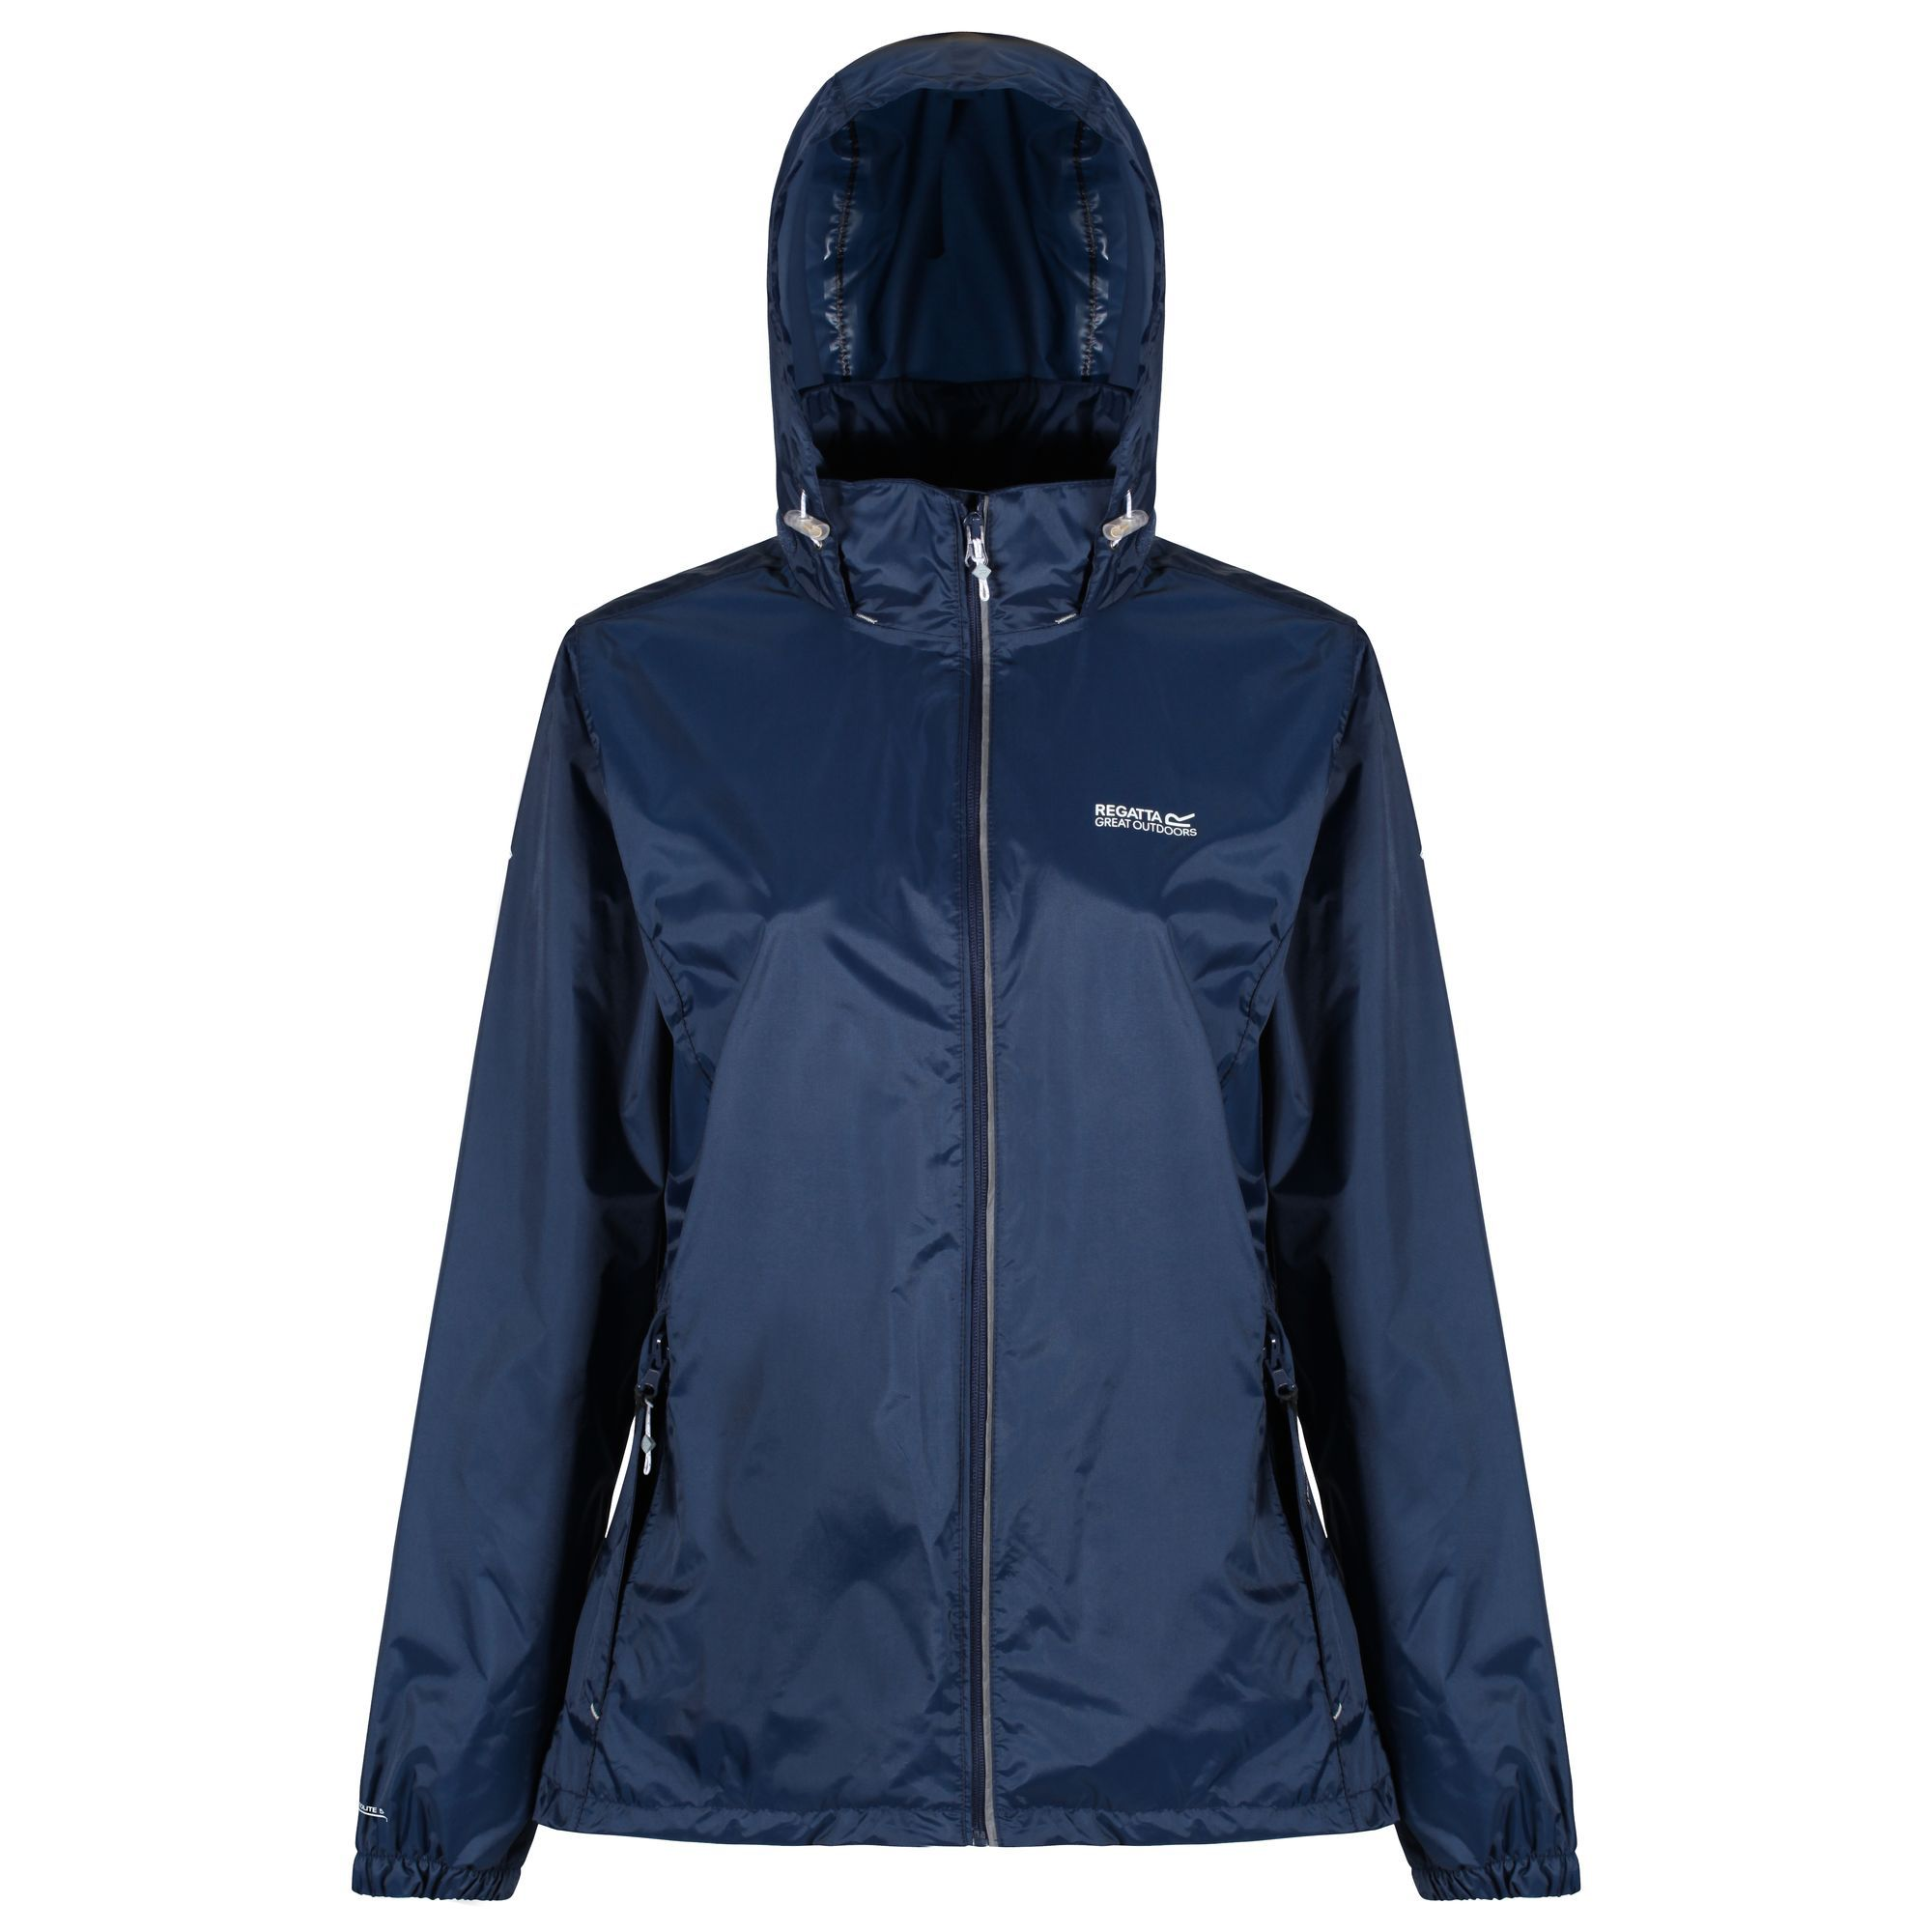 Regatta Corinne Waterproof Jacket, Midnight